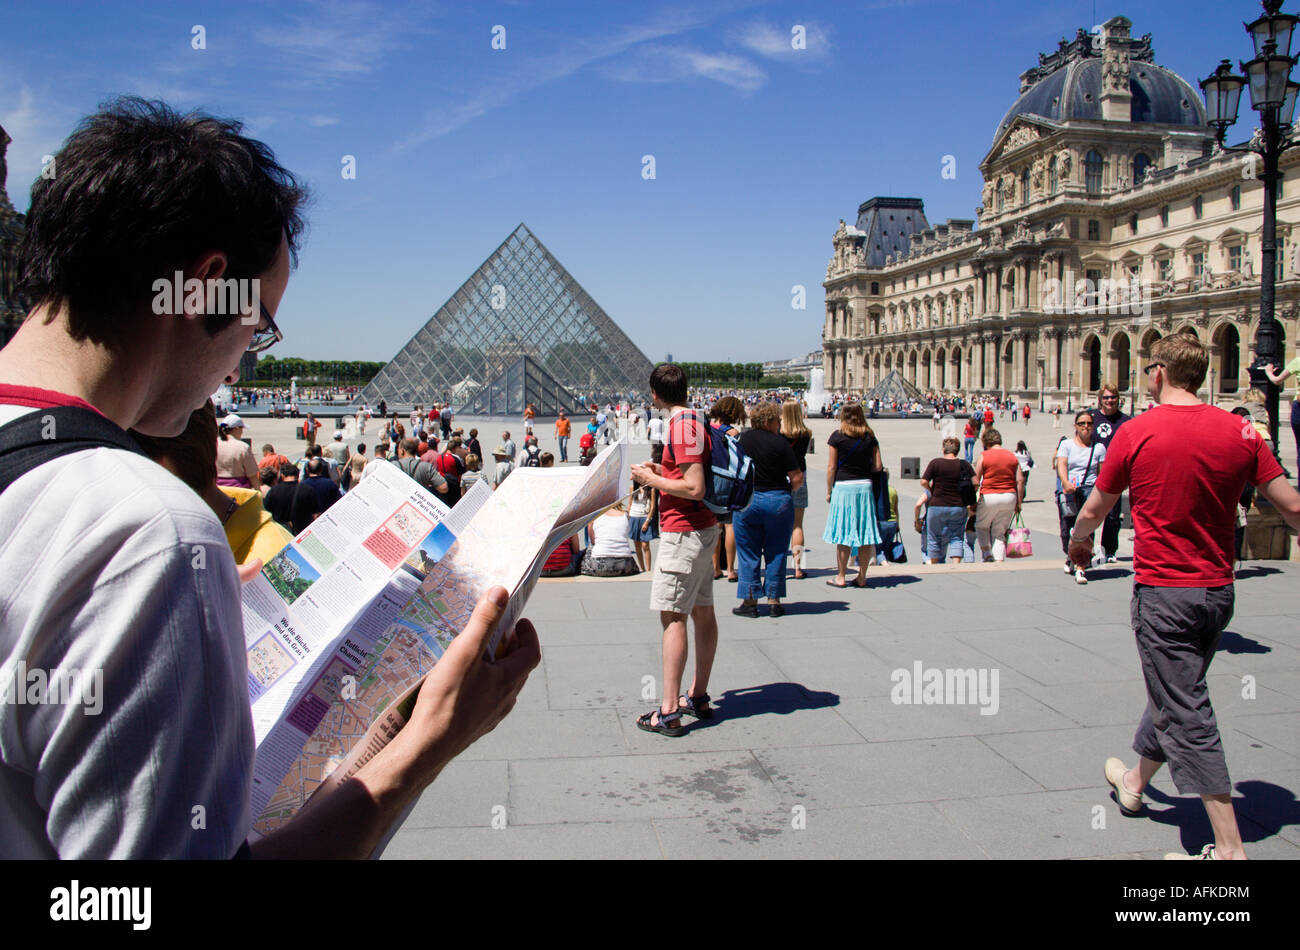 france ile de france paris tourist reading city map in square busy with people at louvre